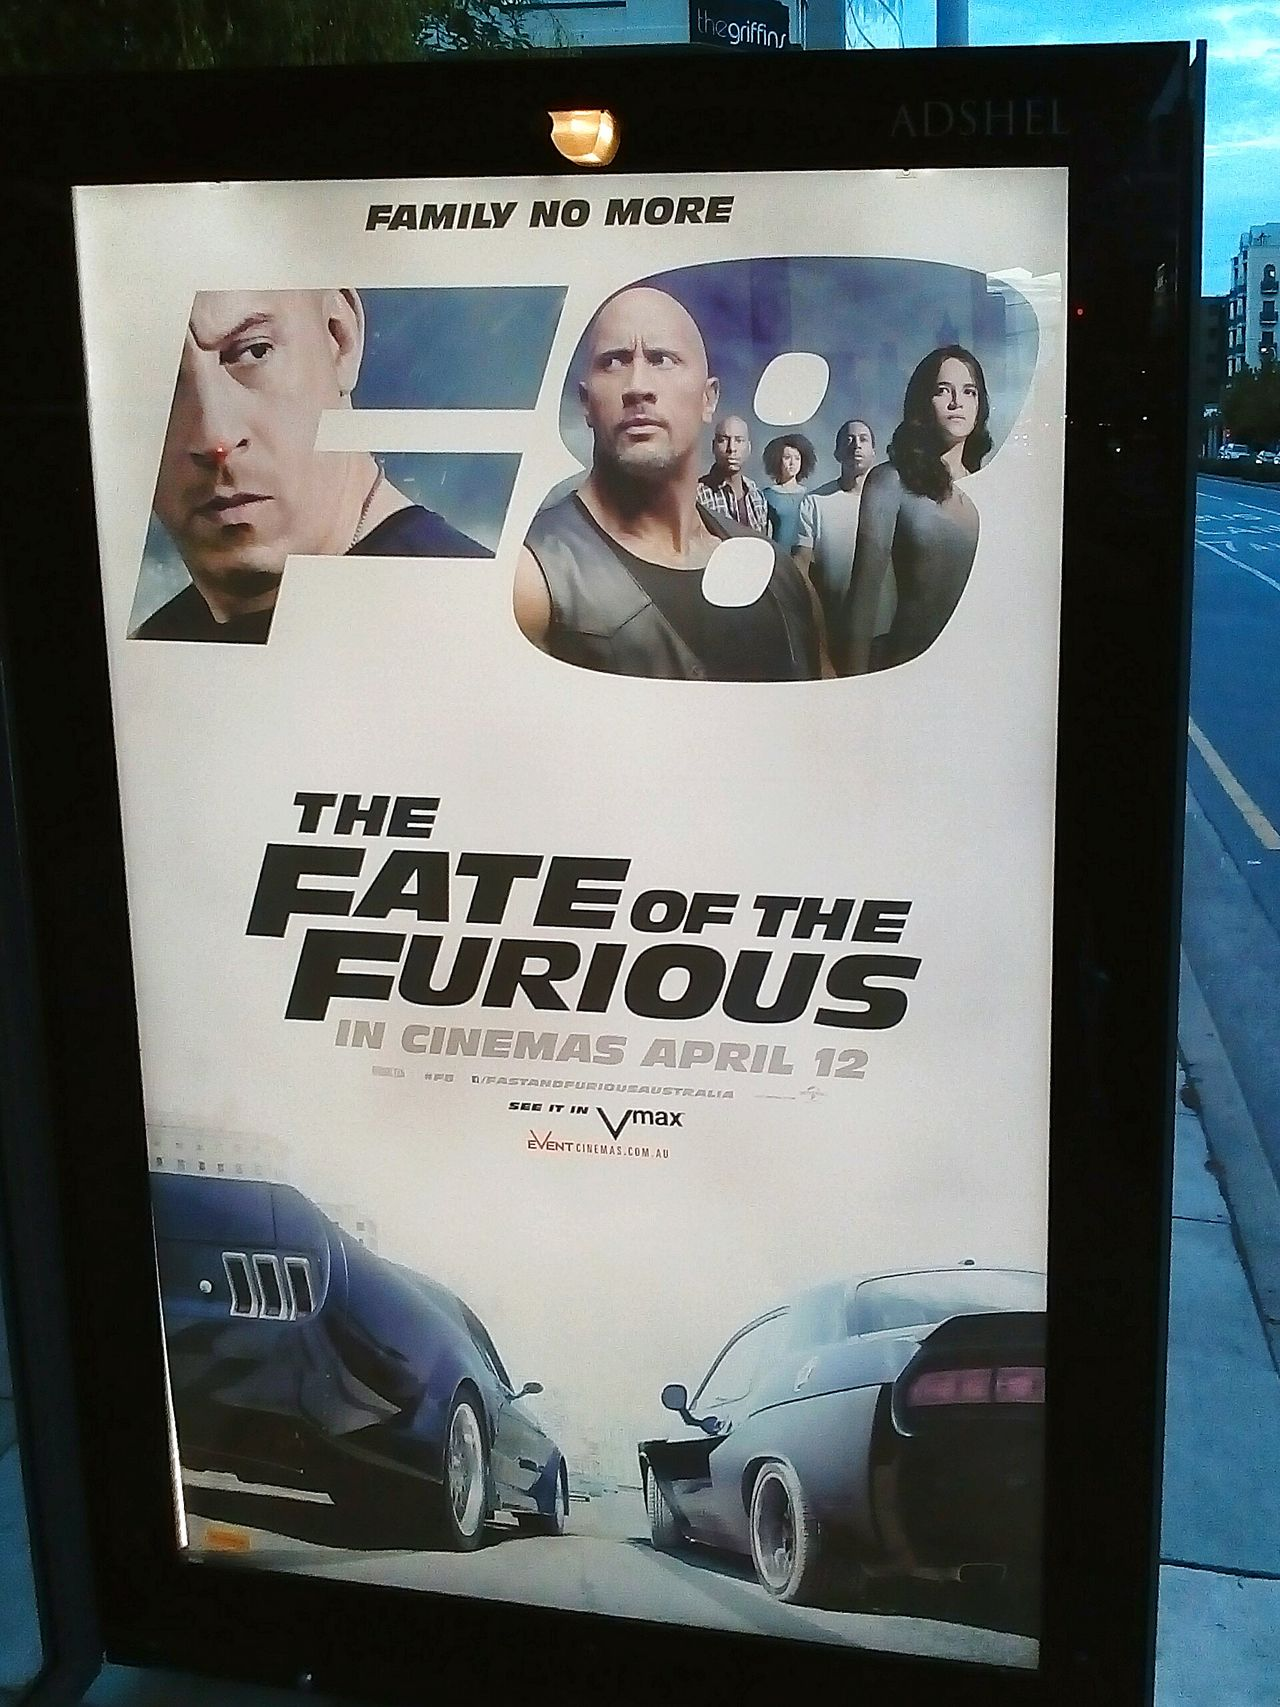 F8 Thefateofthefurious The Fate Of The Furious Signs Sign Family No More MOVIE Illuminated Signs Movies Fast&furious Thefast&thefurious Thefastandthefurious The Fast And The Furious Illuminatedsigns Fast And Furious Fast & Furious Signage Signs_collection Signs & More Signs Actionmovies Signstalkers SIGN. Action Movies Actionmovie Action Movie